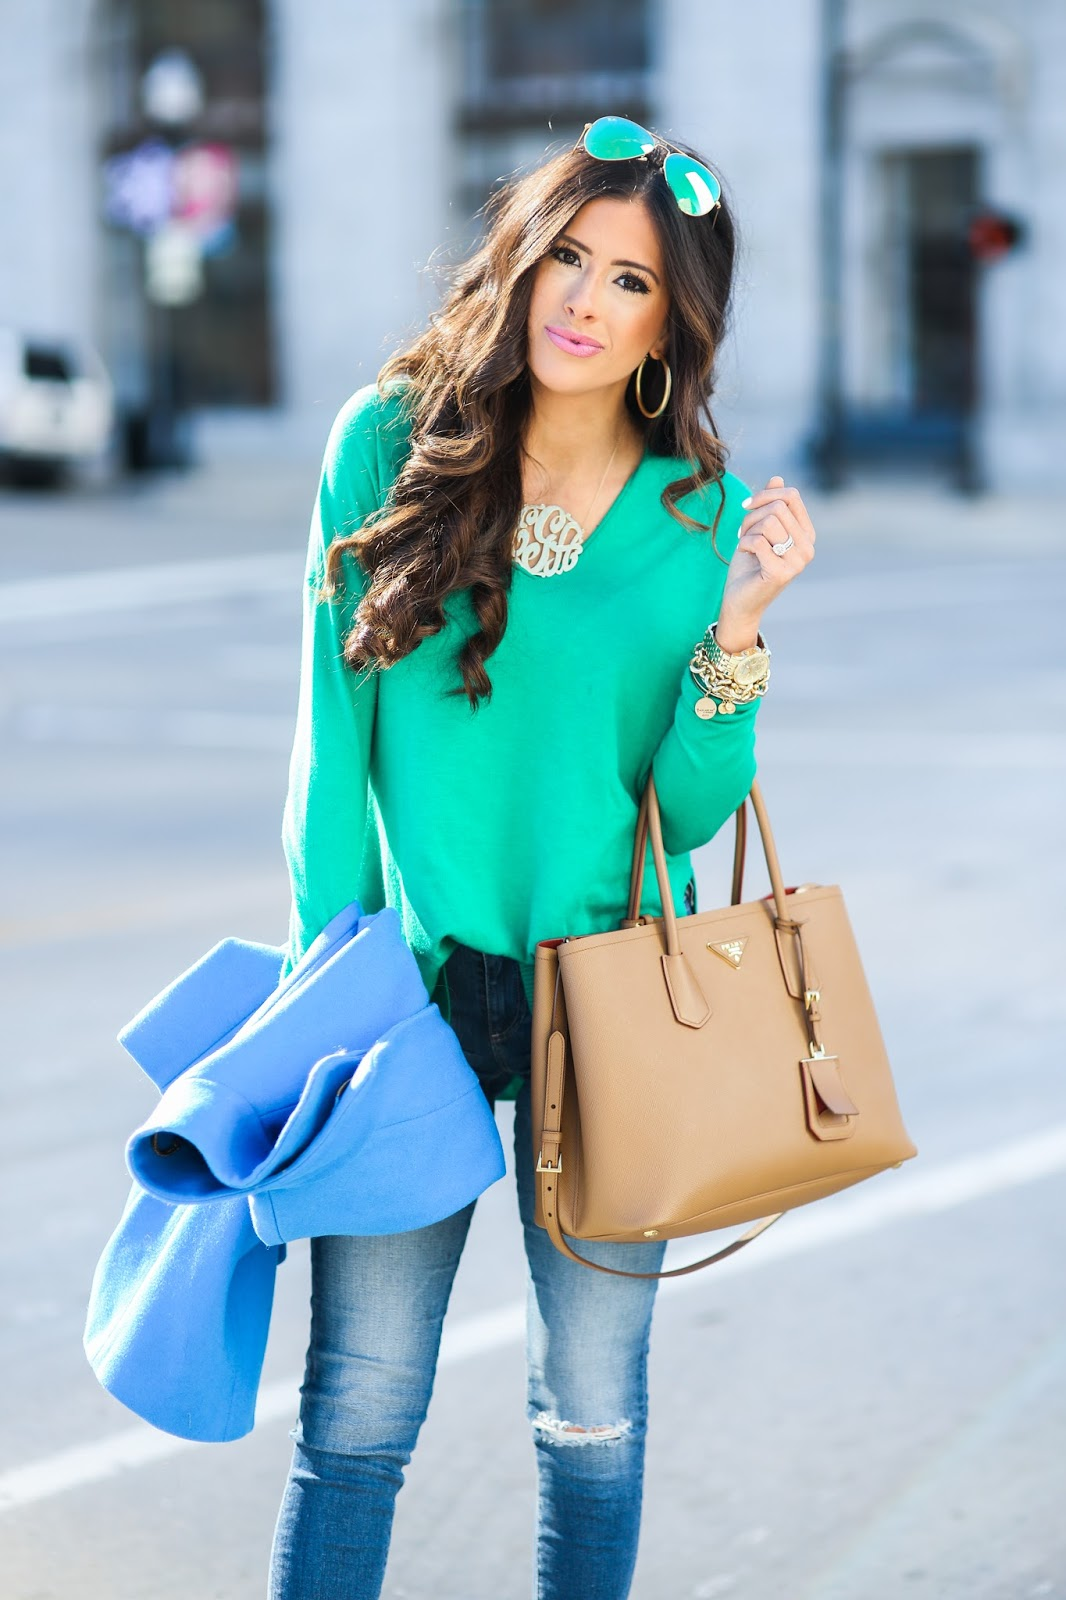 winter fashion pinterest, winter outfit idea pinterest, green trouve sweater nordstrom, AG jeans raw hem skinny jeans, oversized gold monogram, love always monogram, prada tan double tote, green mirrored ray ban aviators, cognac booties nordstrom, tan leather booties, how to style ripped jeans with tan booties, blue crew cocoon coat, brunette hair balayage medium length, brunette hair cut curls, david yurman statement rings, michael kors gold watch, david yurman alex ani bracelet stack, tulsa fashion blogger